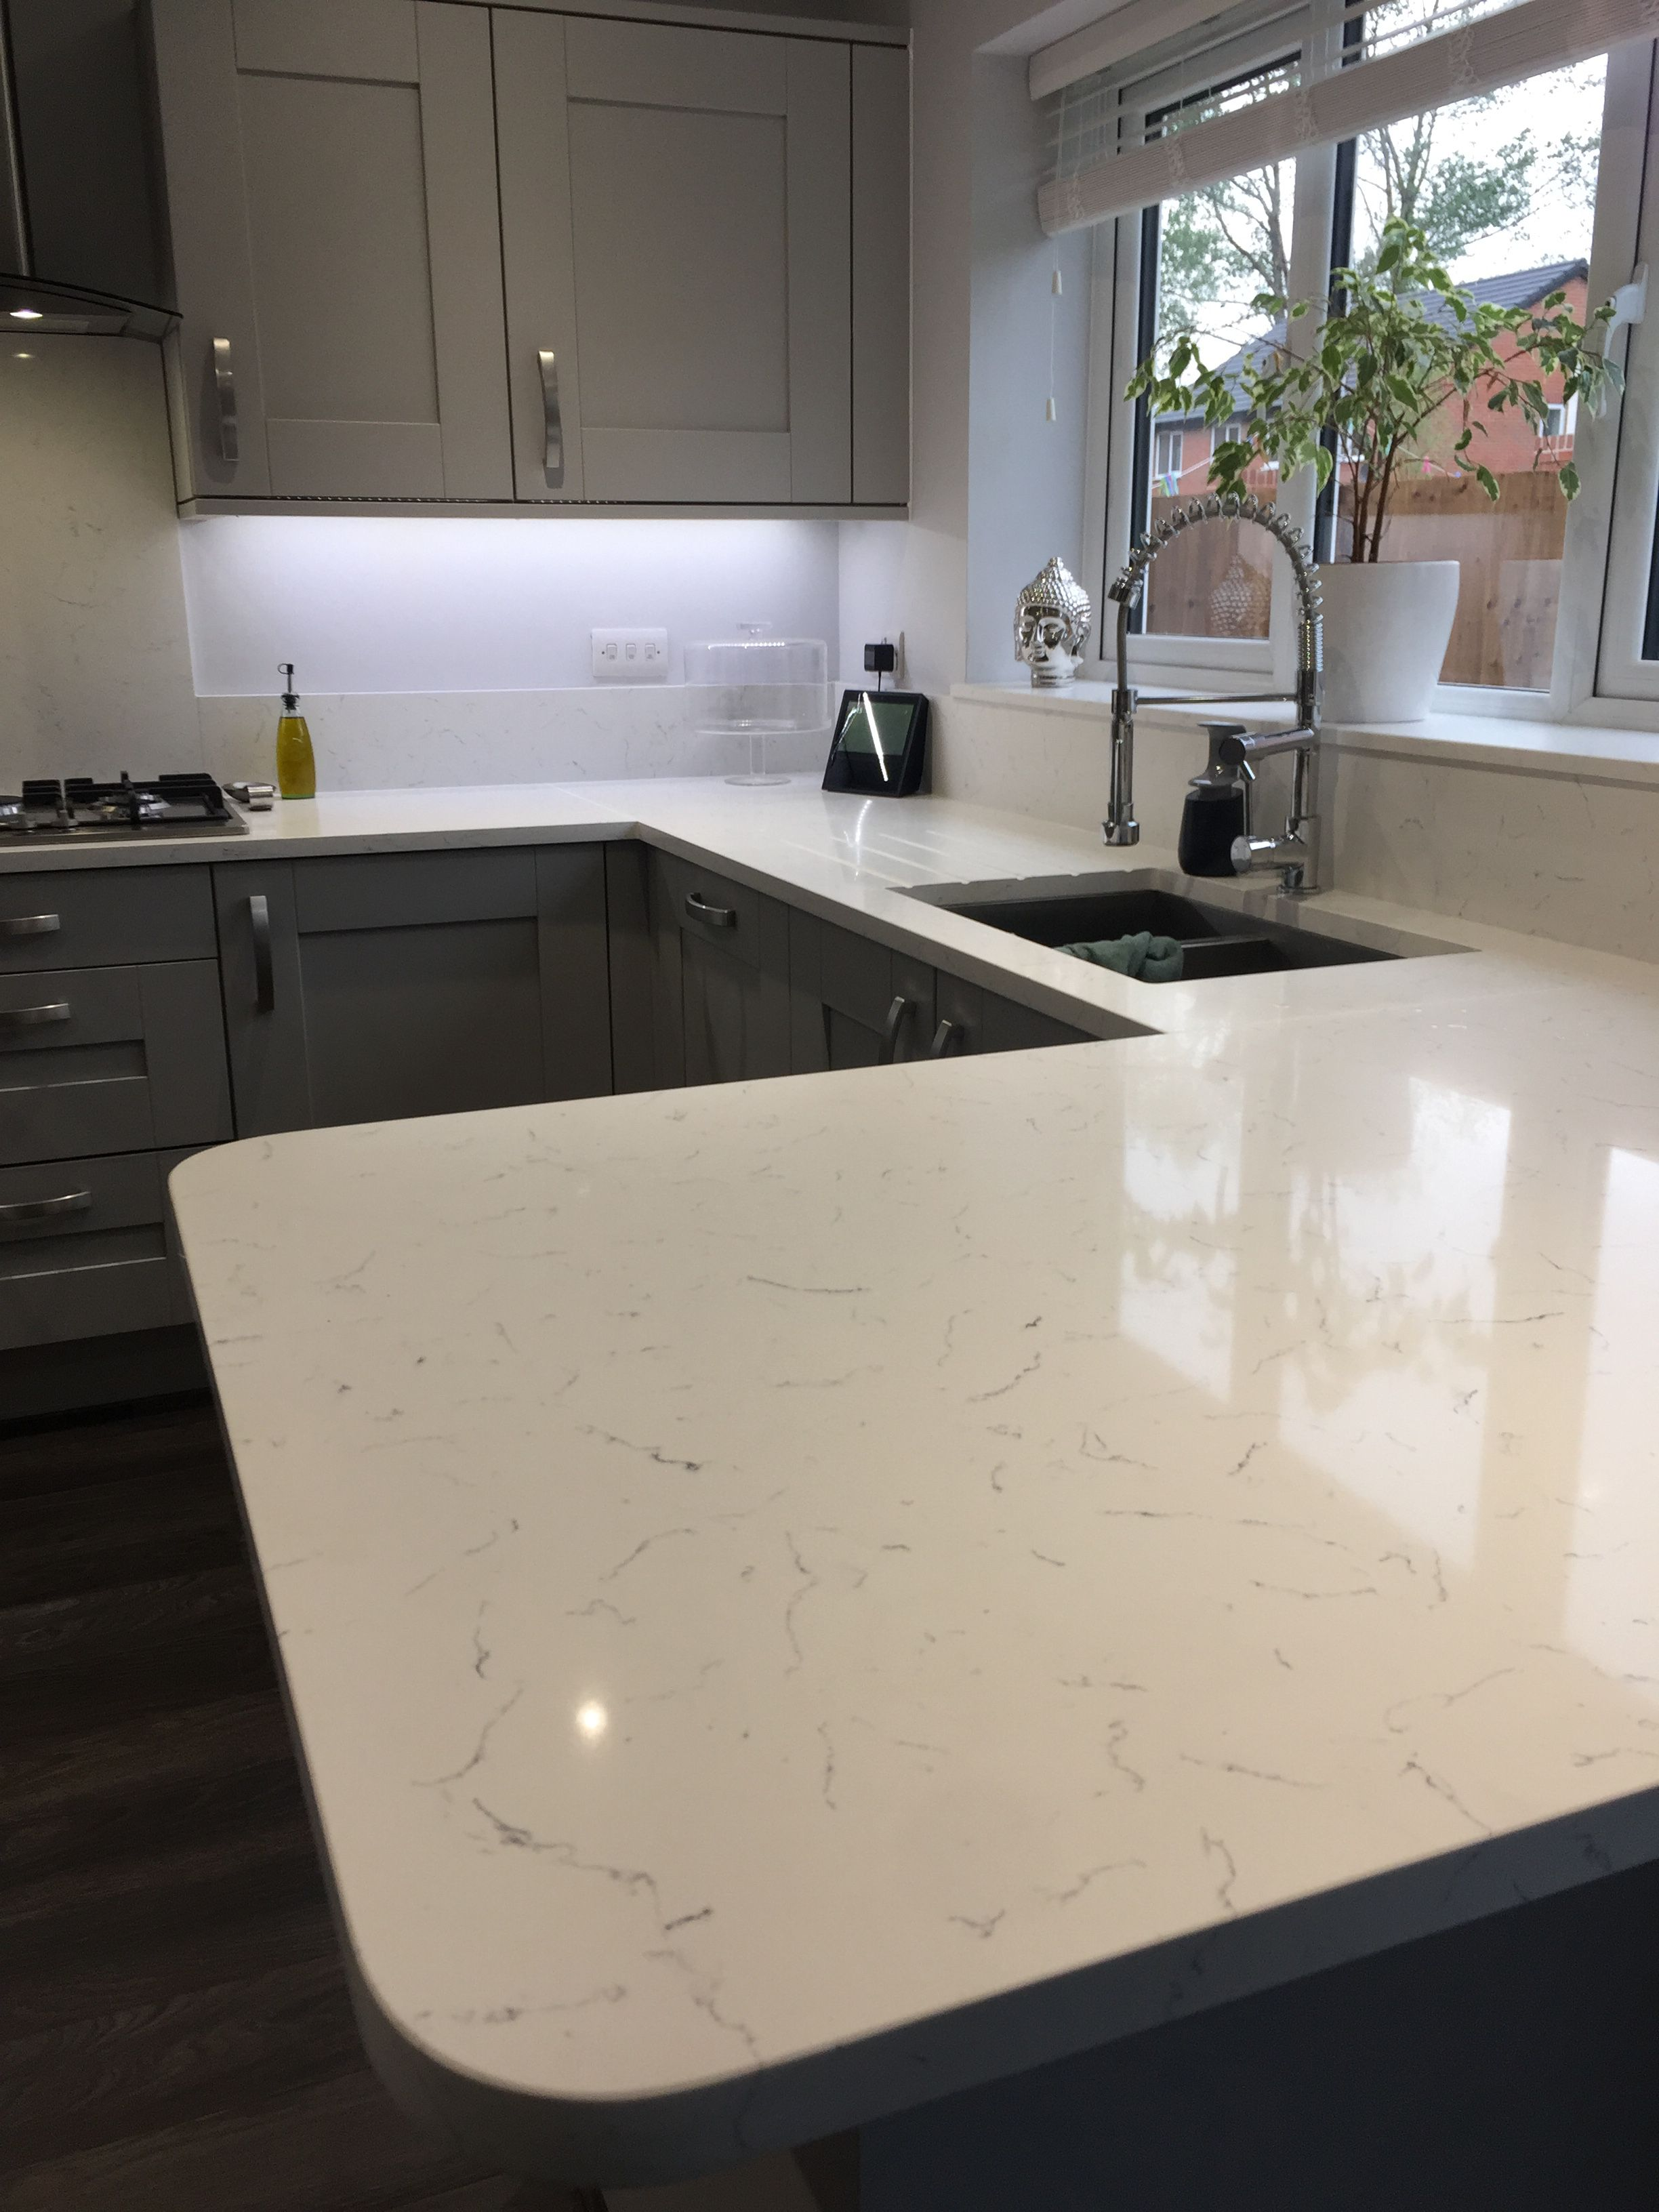 Our amazing Carrera Quartz worktops will finish off any